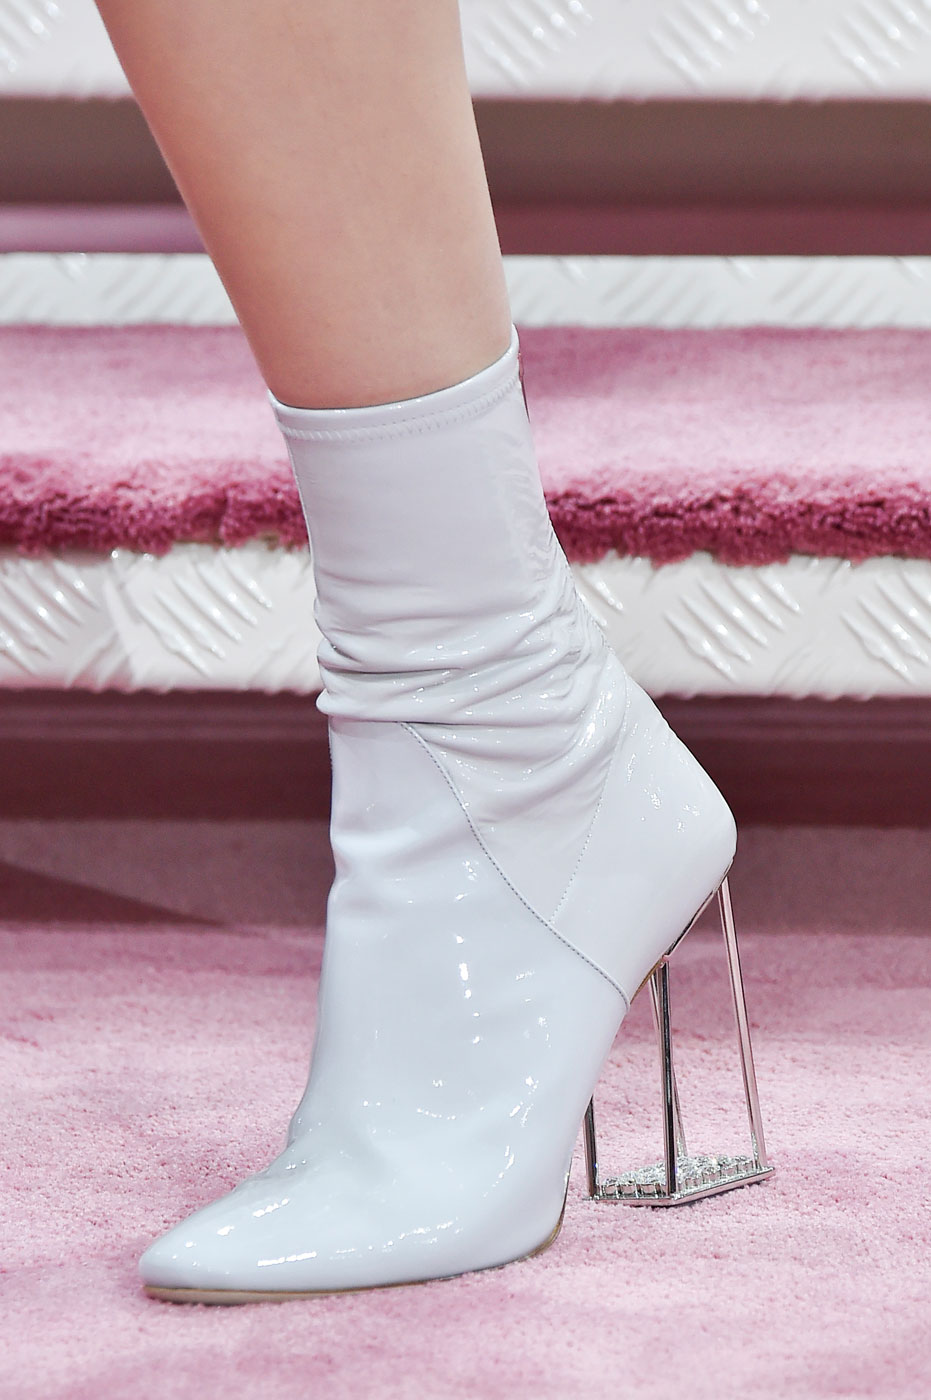 Christian-Dior-fashion-runway-show-close-ups-haute-couture-paris-spring-summer-2015-the-impression-078